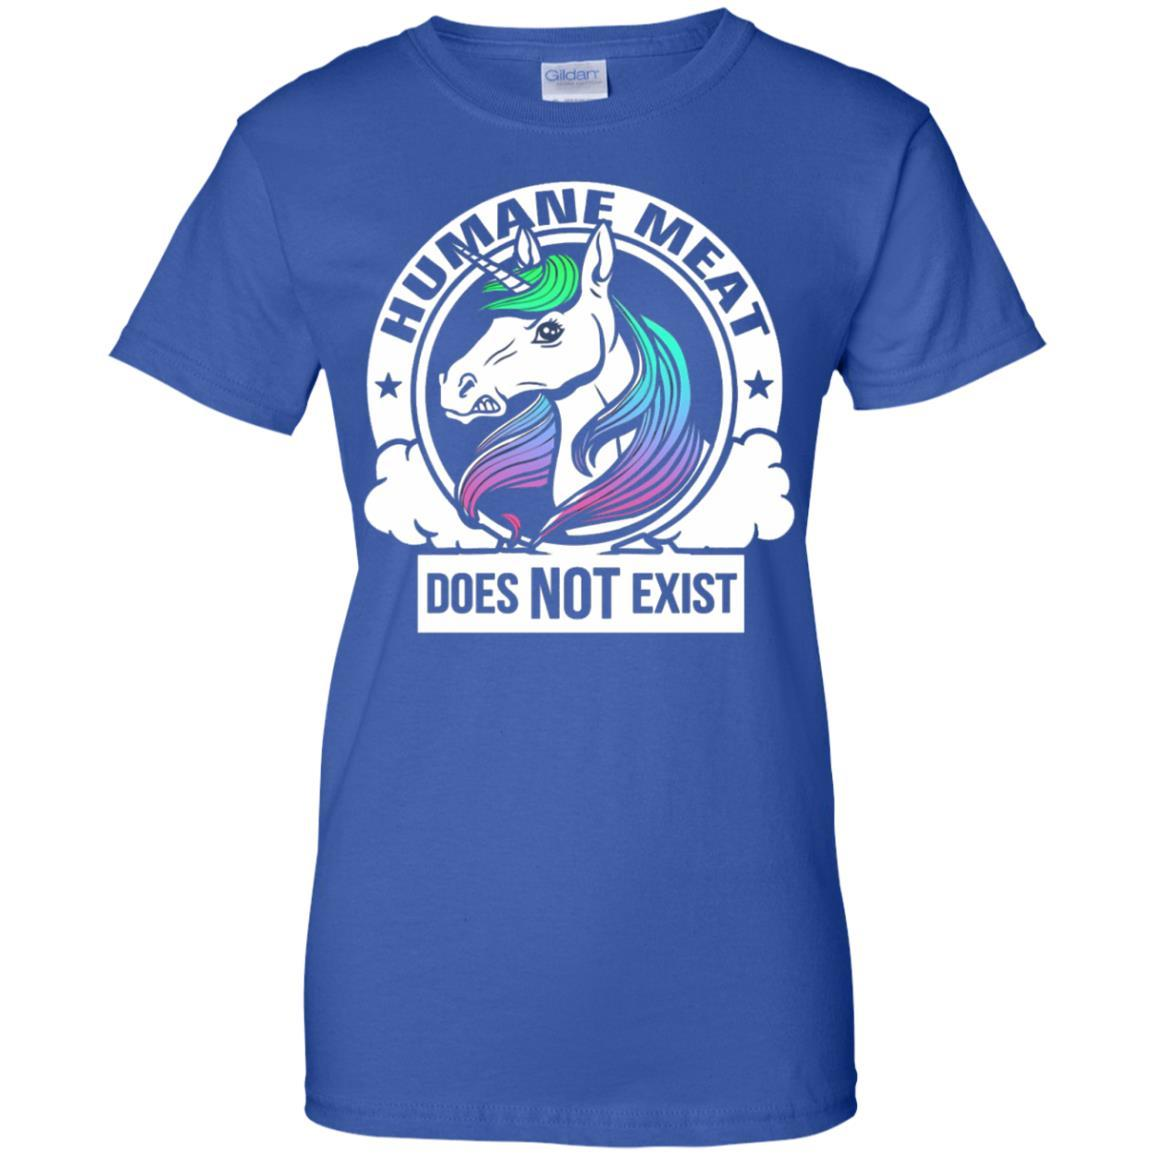 Humane Meat Does Not Exist T Shirt - Vegan T Shirt